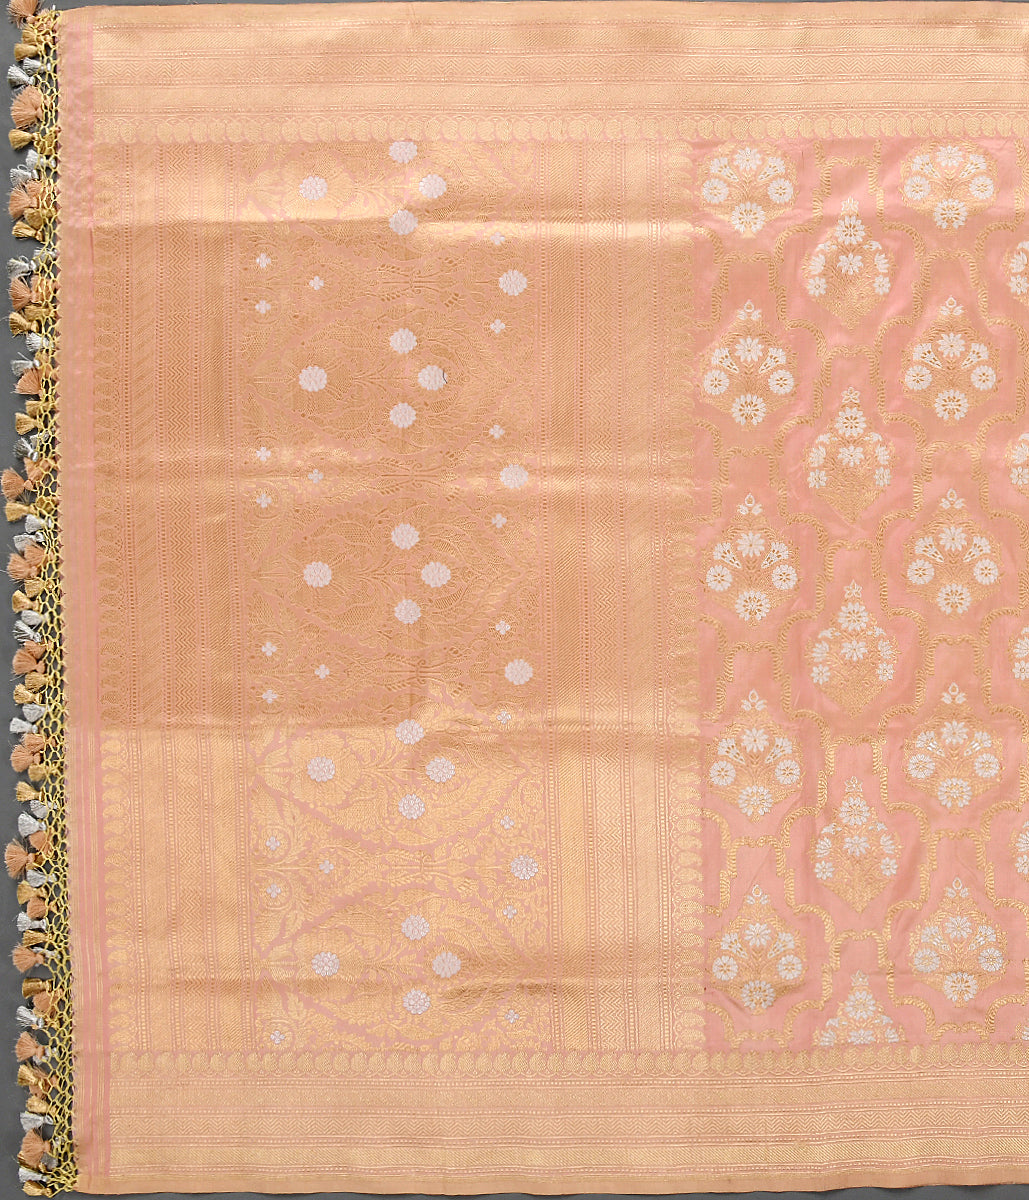 Handwoven Light Peach Kadhwa Jangla Dupatta